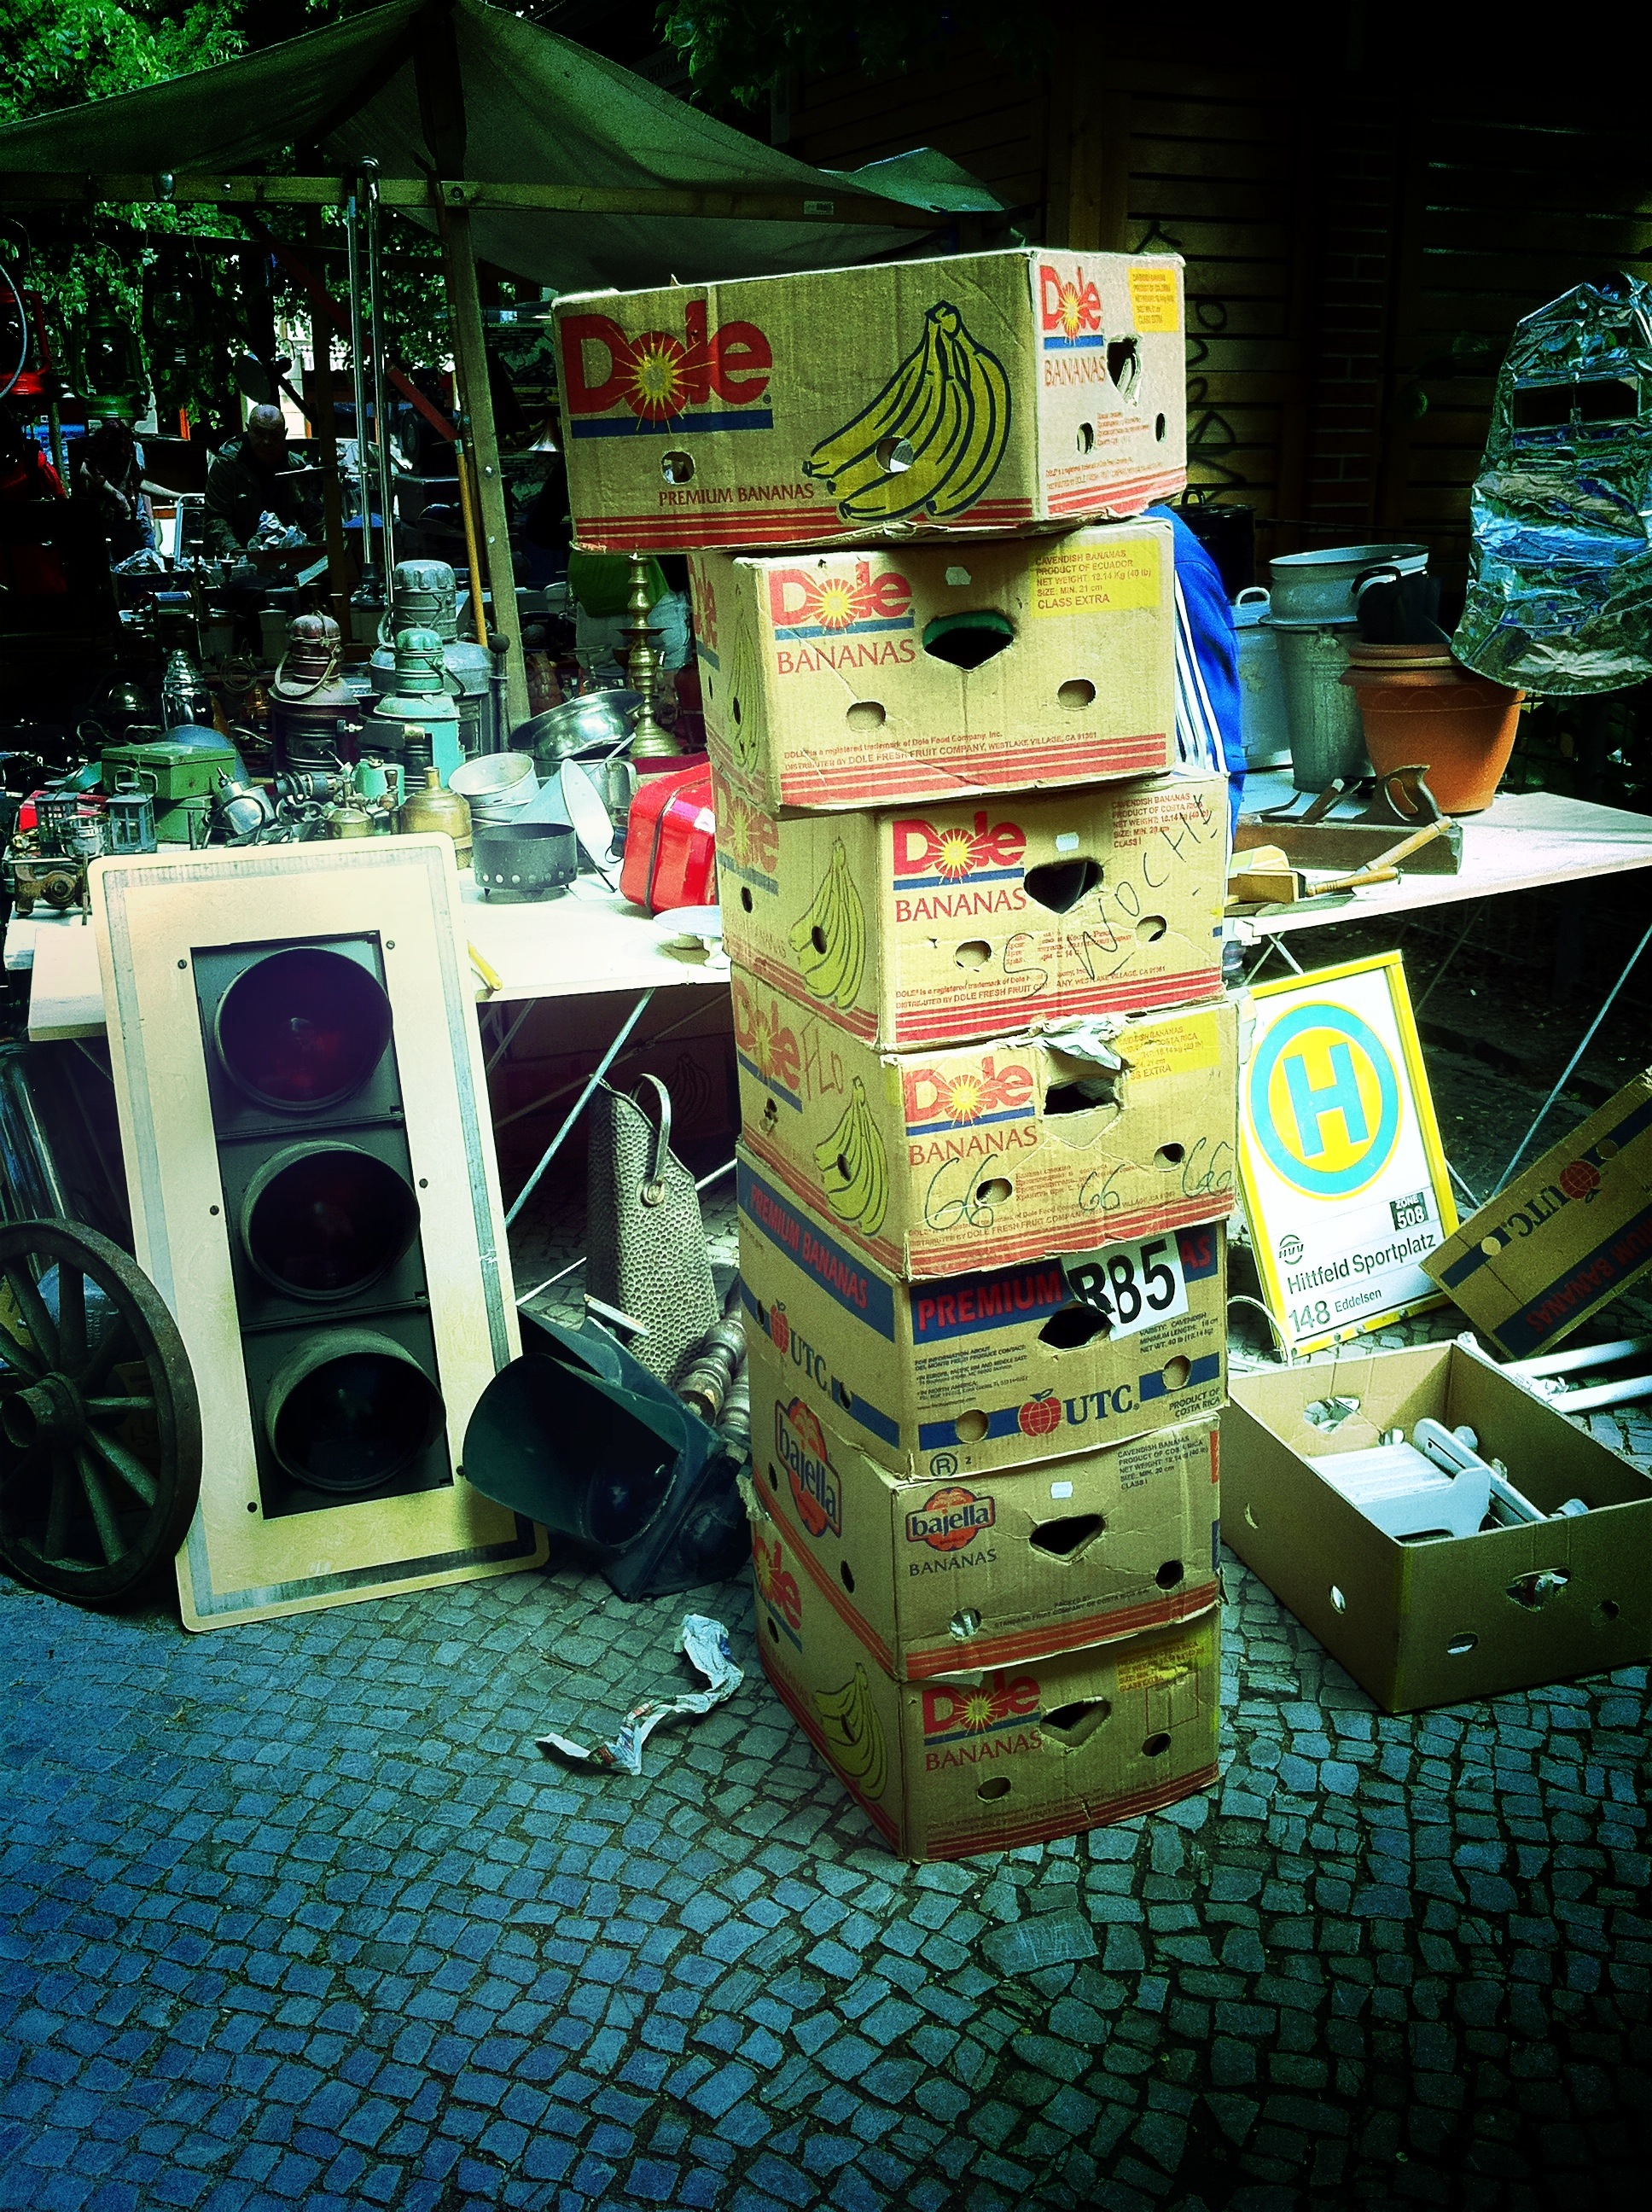 A photograph of several banana boxes being packed up.